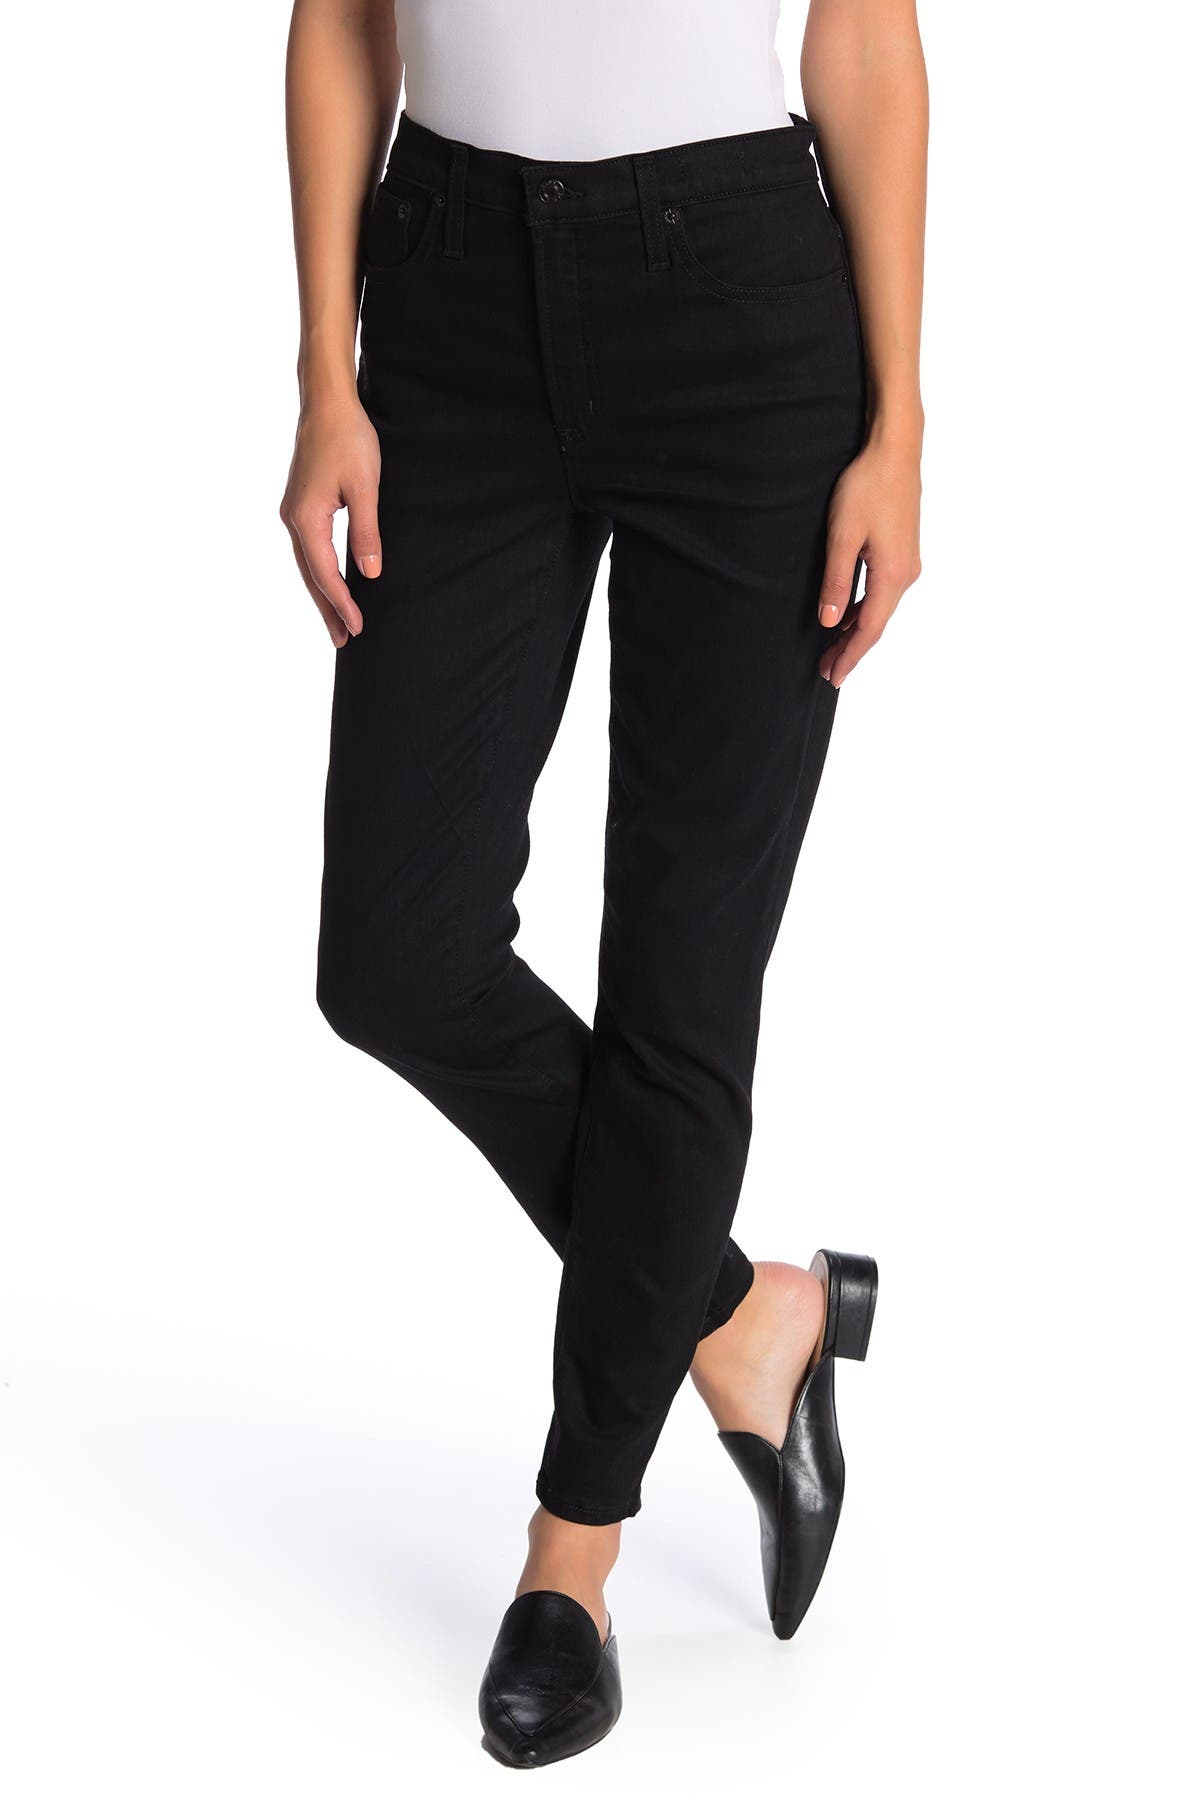 Image of J. Crew High Rise Toothpick Skinny Jeans